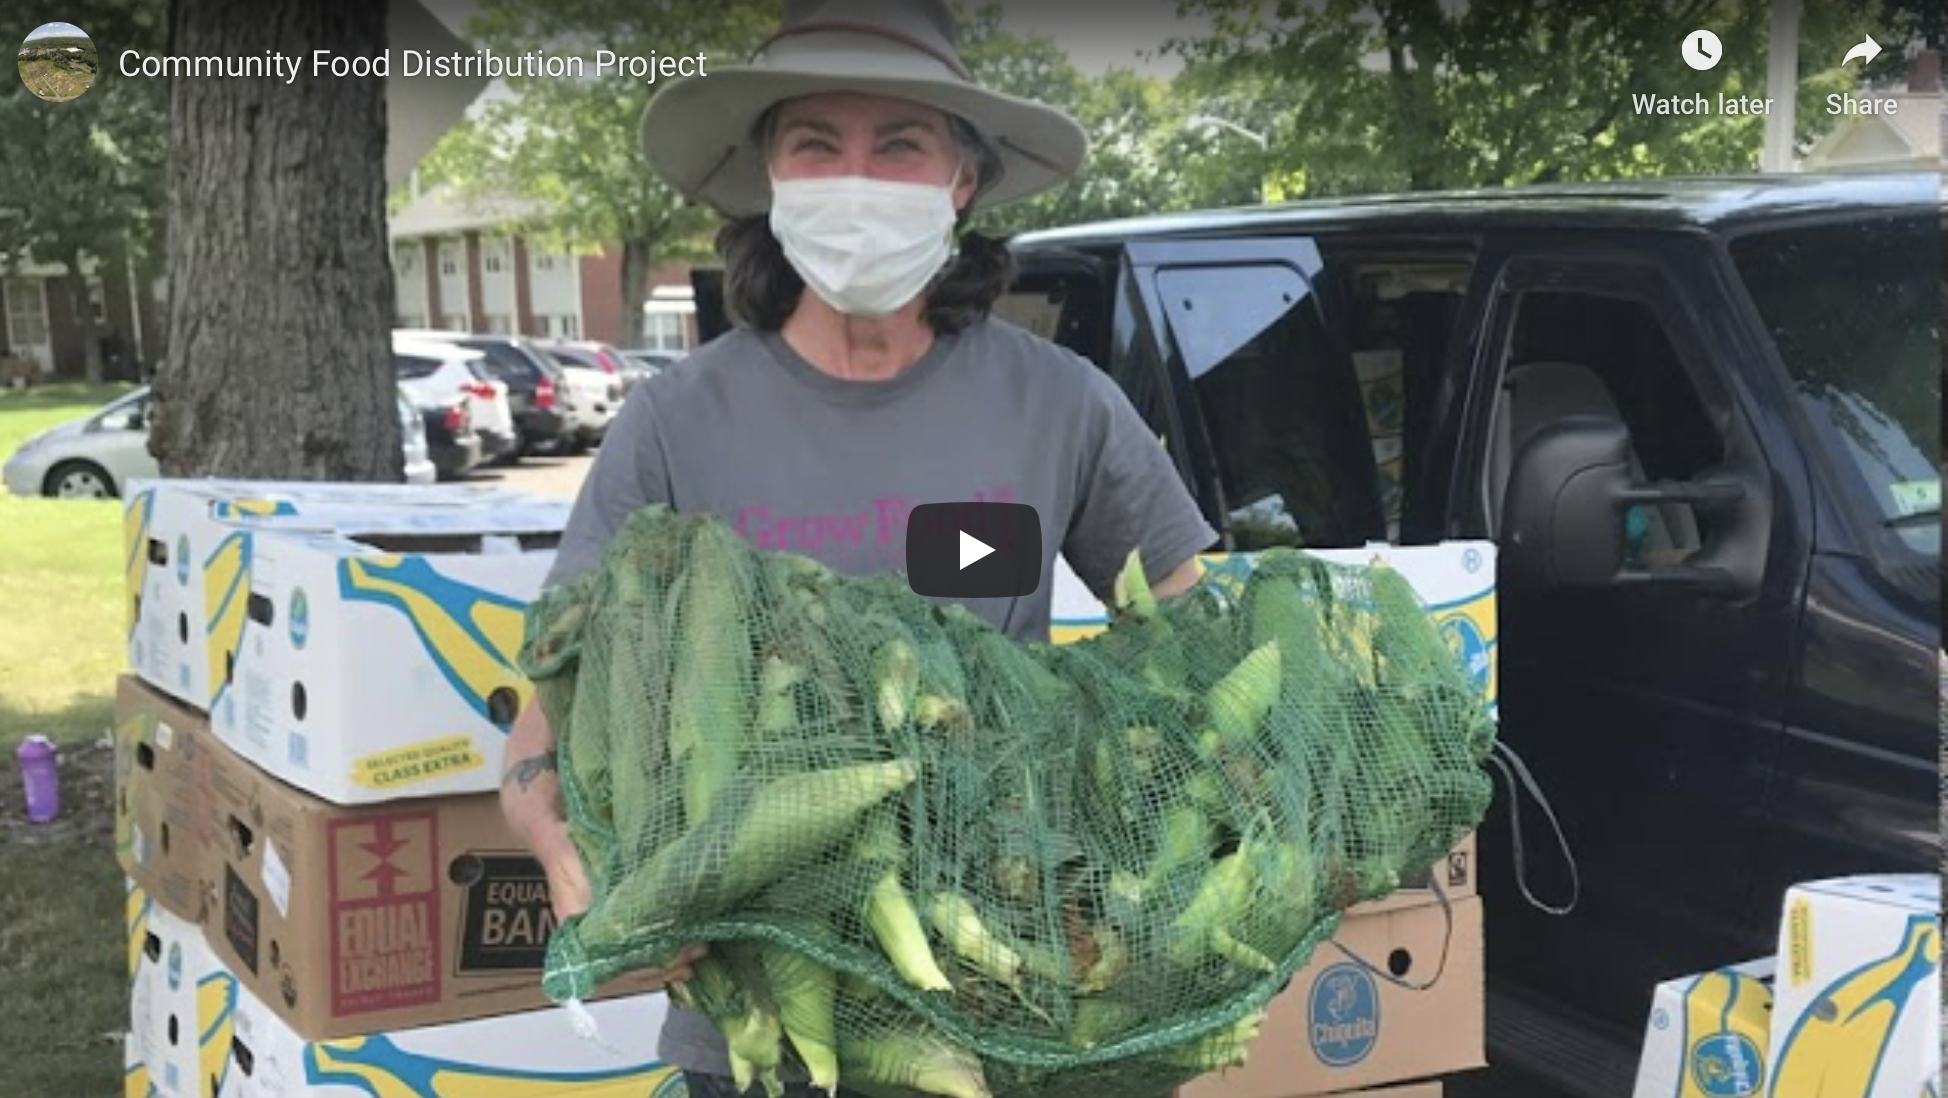 Community Food Distribution Project Video